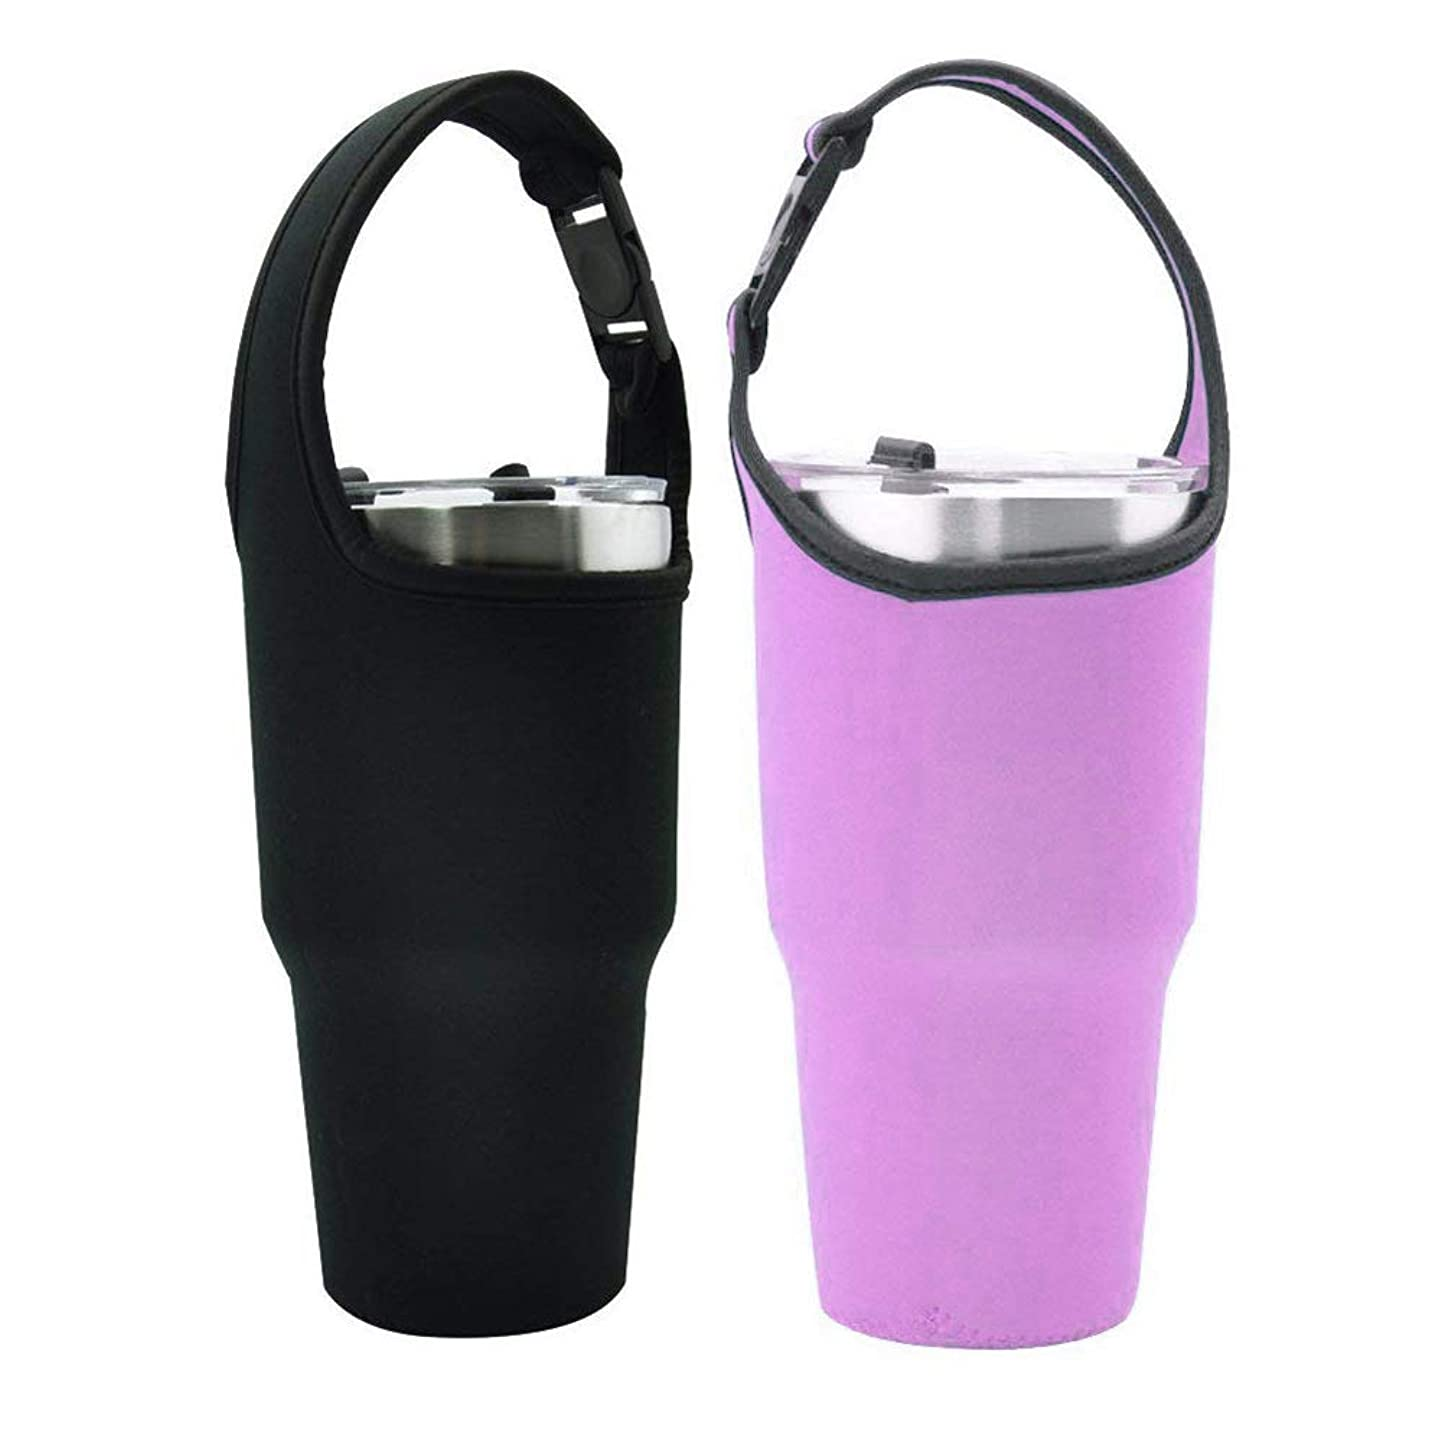 Tumbler Carrier Holder Pouch For 30oz Stainless Steel Vacuum Travel Insulated Coffee Mug, Yoelike 2 Pack Tumbler Carrier Handle Bag Neoprene Black Sleeve with Buckle Carrying Handle(Black & Purple) wchntqrpqdj9